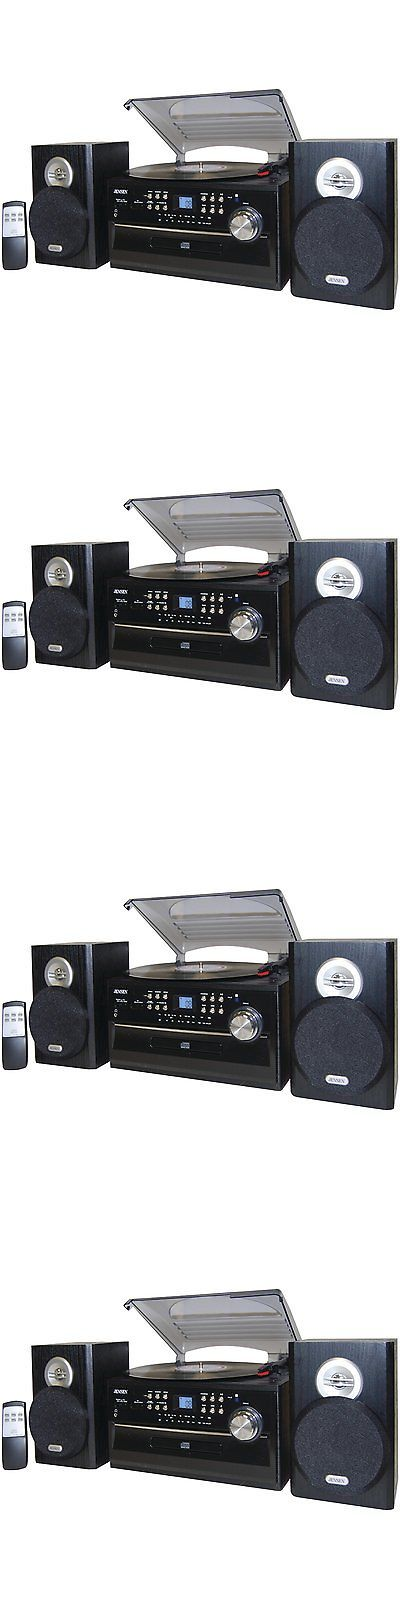 Record Players Home Turntables: Jensen Record Player With Speakers 3 Speed Turntable Cd Cassette Stereo System BUY IT NOW ONLY: $119.9